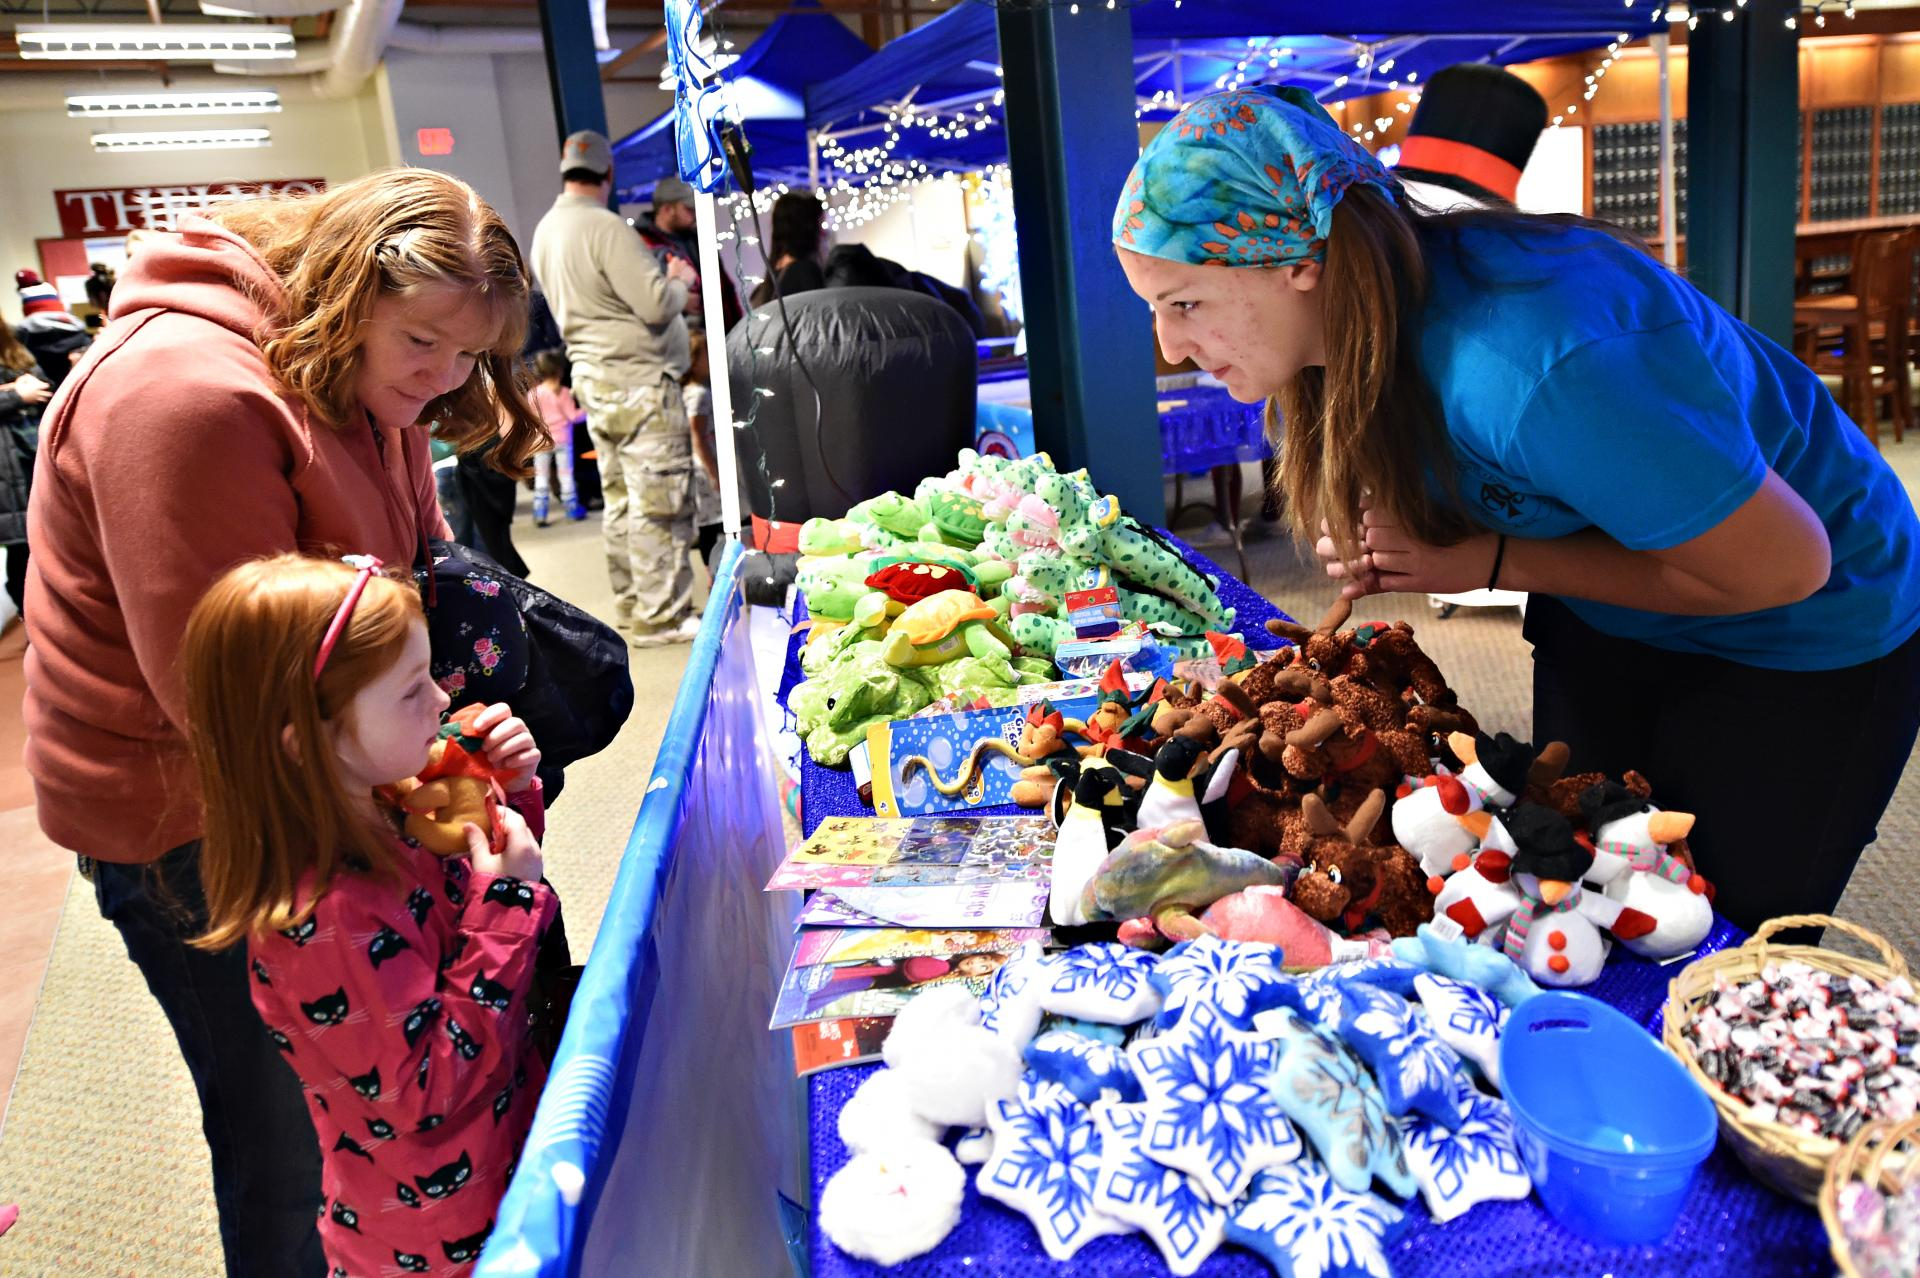 Winter Weekend featured, among other things, a carnival for local kids.